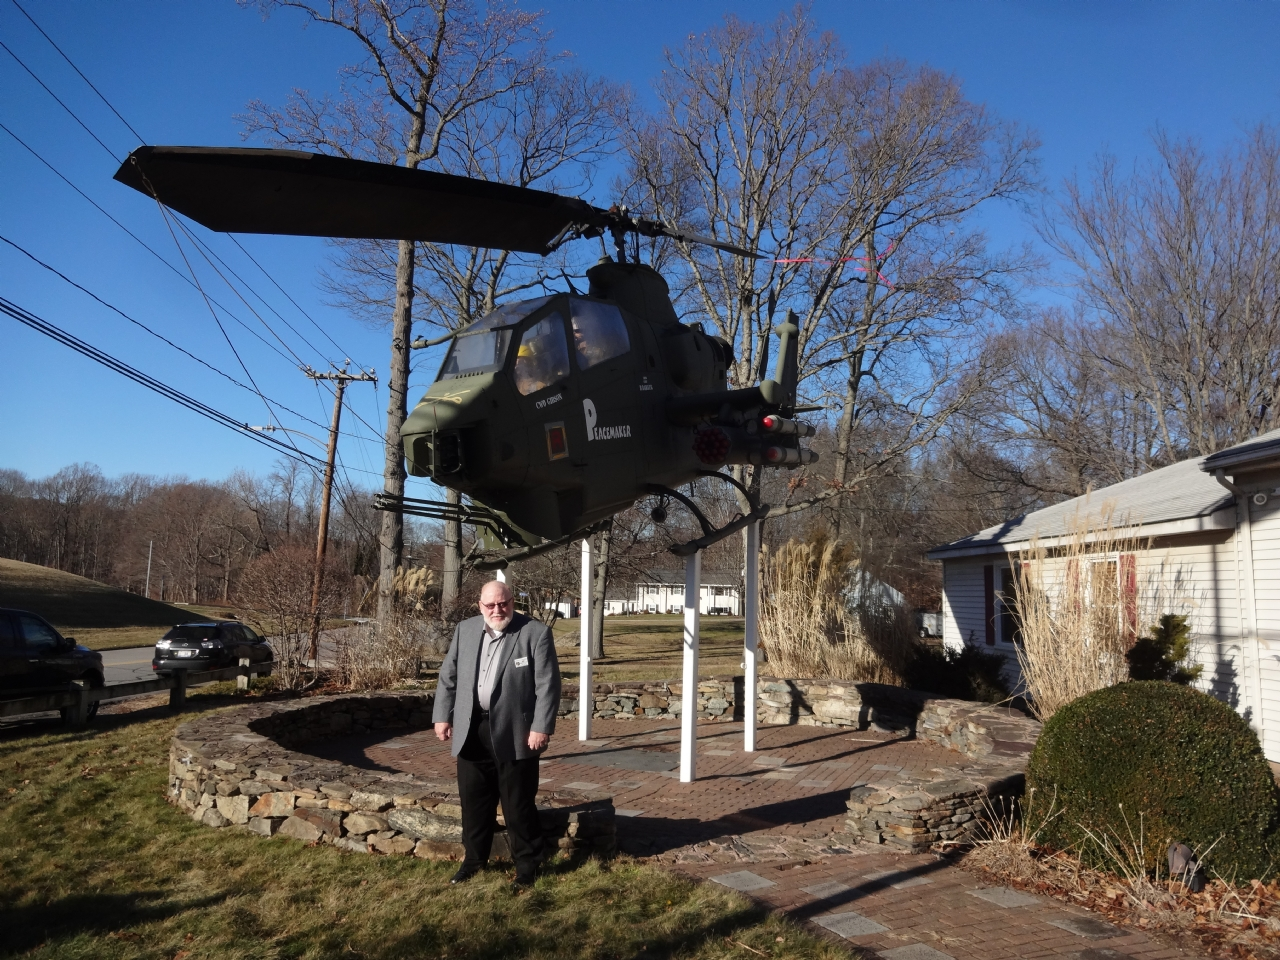 C I C Keith Harman at VFW Post 5095 Under the Cobra Helicopter